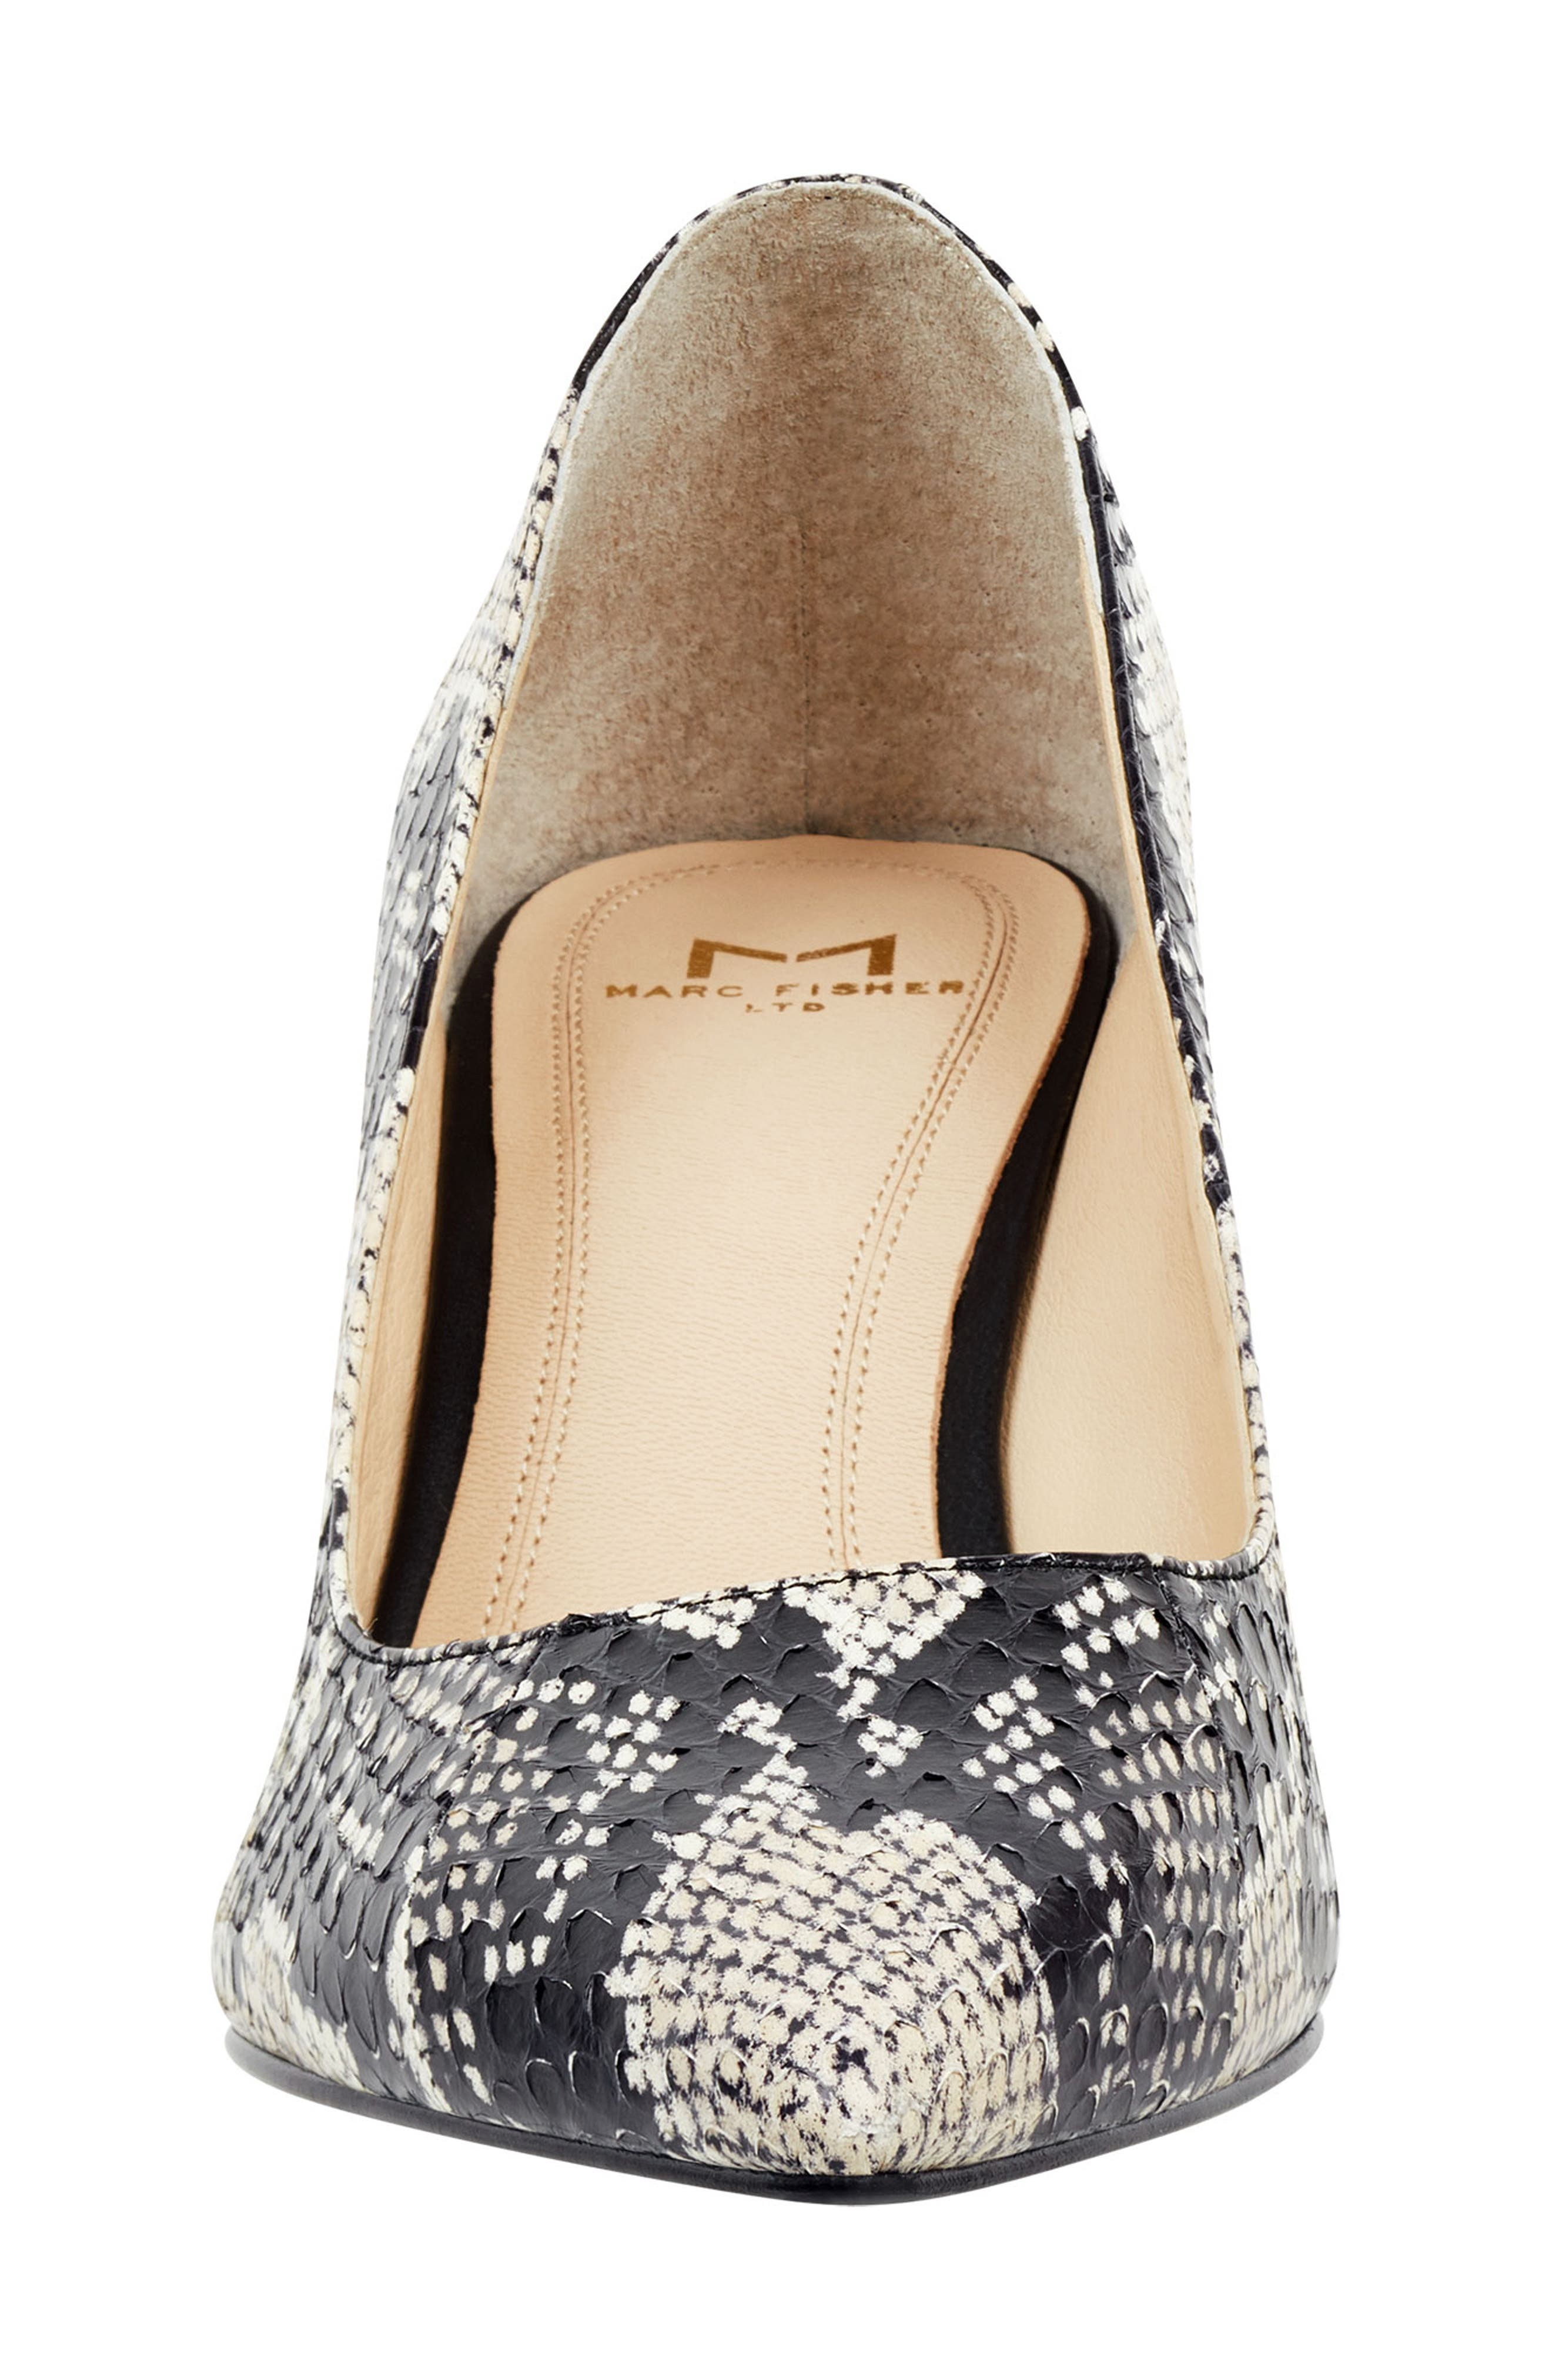 'Zala' Pump,                             Alternate thumbnail 4, color,                             BEIGE/ BLACK SNAKE PRINT